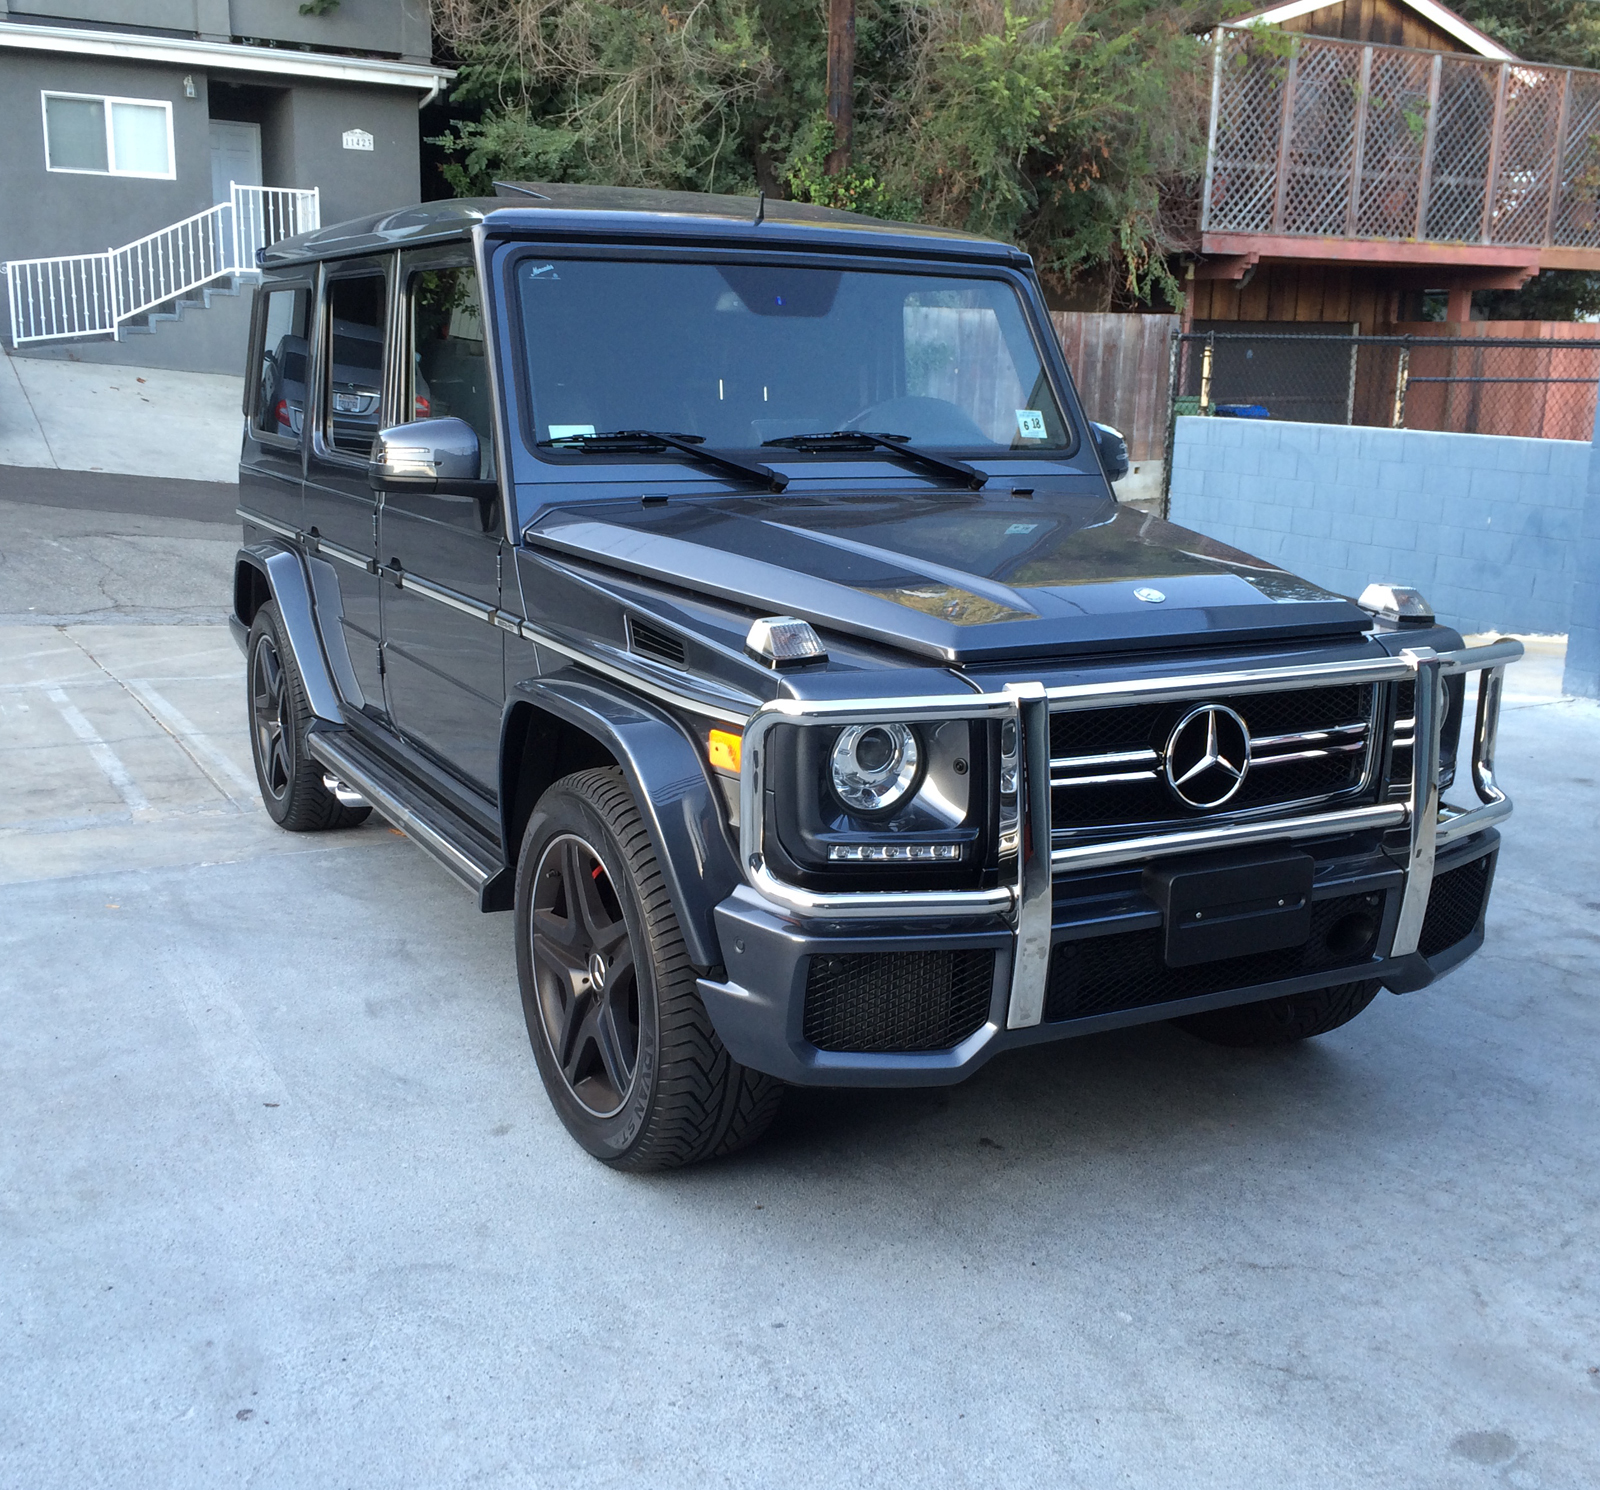 Mercedes Benz 2014 G Class: Purchase Used 2014 Mercedes G63 AMG Matte Black Designo